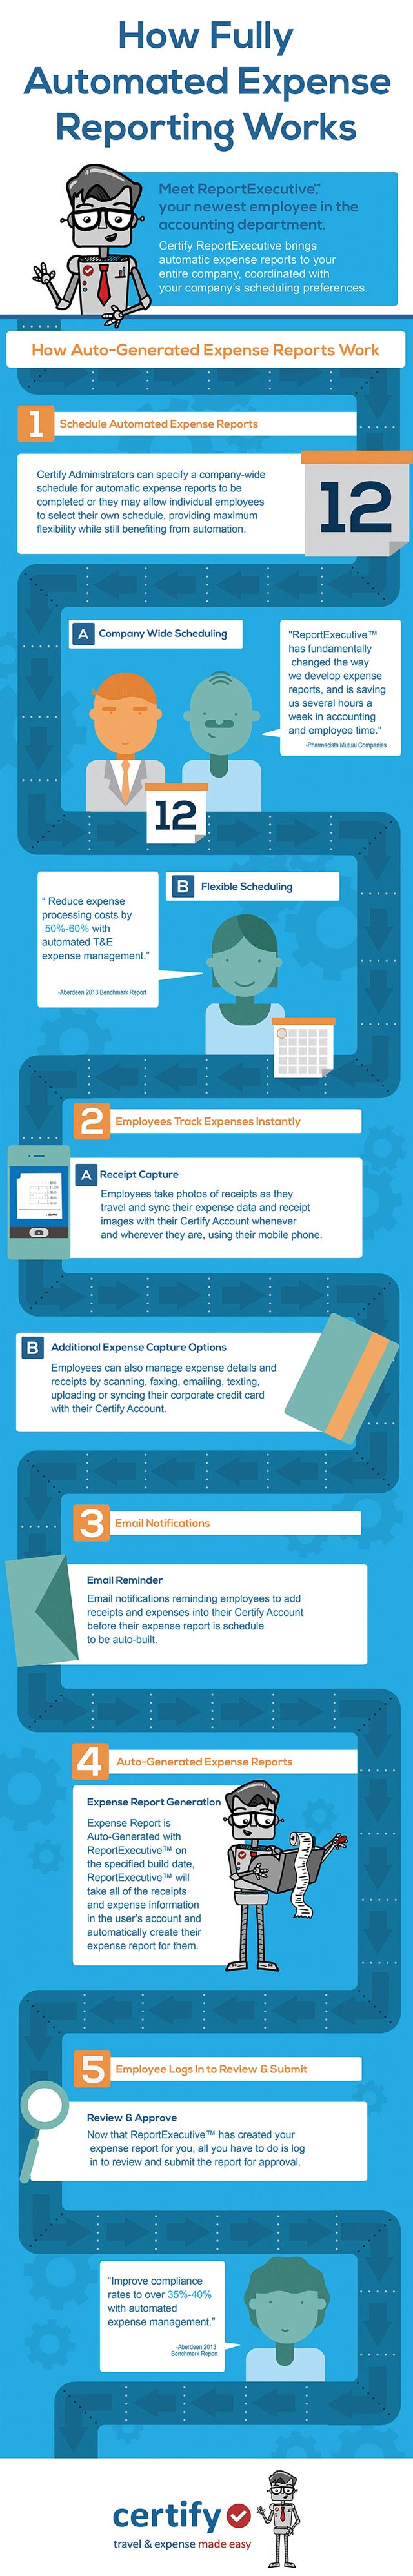 infographic how fully automated expense reporting works